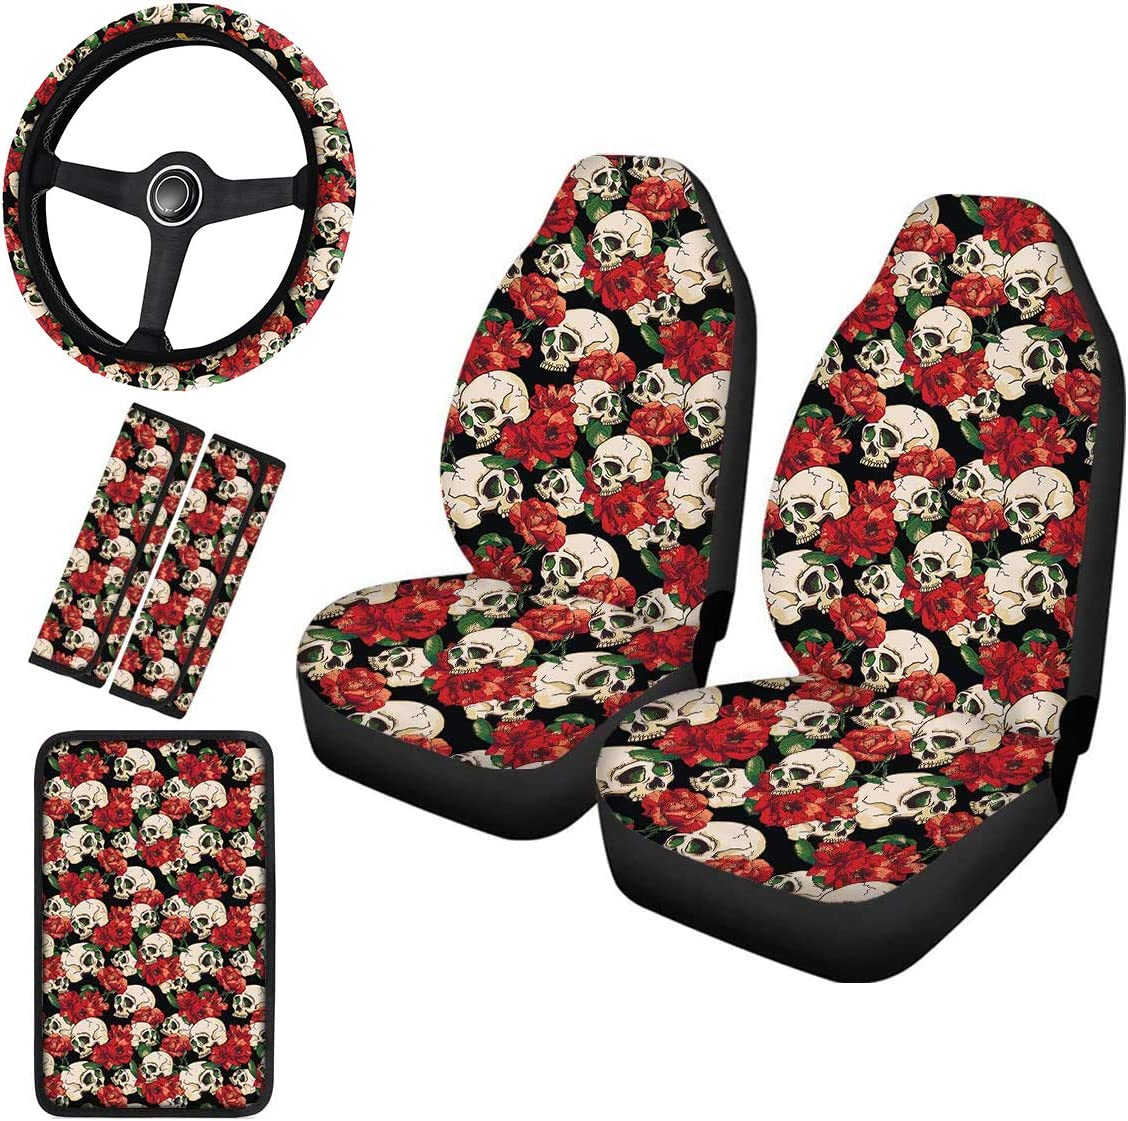 Horeset Aqua Flowers Car Seat Covers Full Set Includes Steering Wheel Cover /& Center Console Armrest Cover /& Automobile Seatbelt Covers Compatible with Most Cars